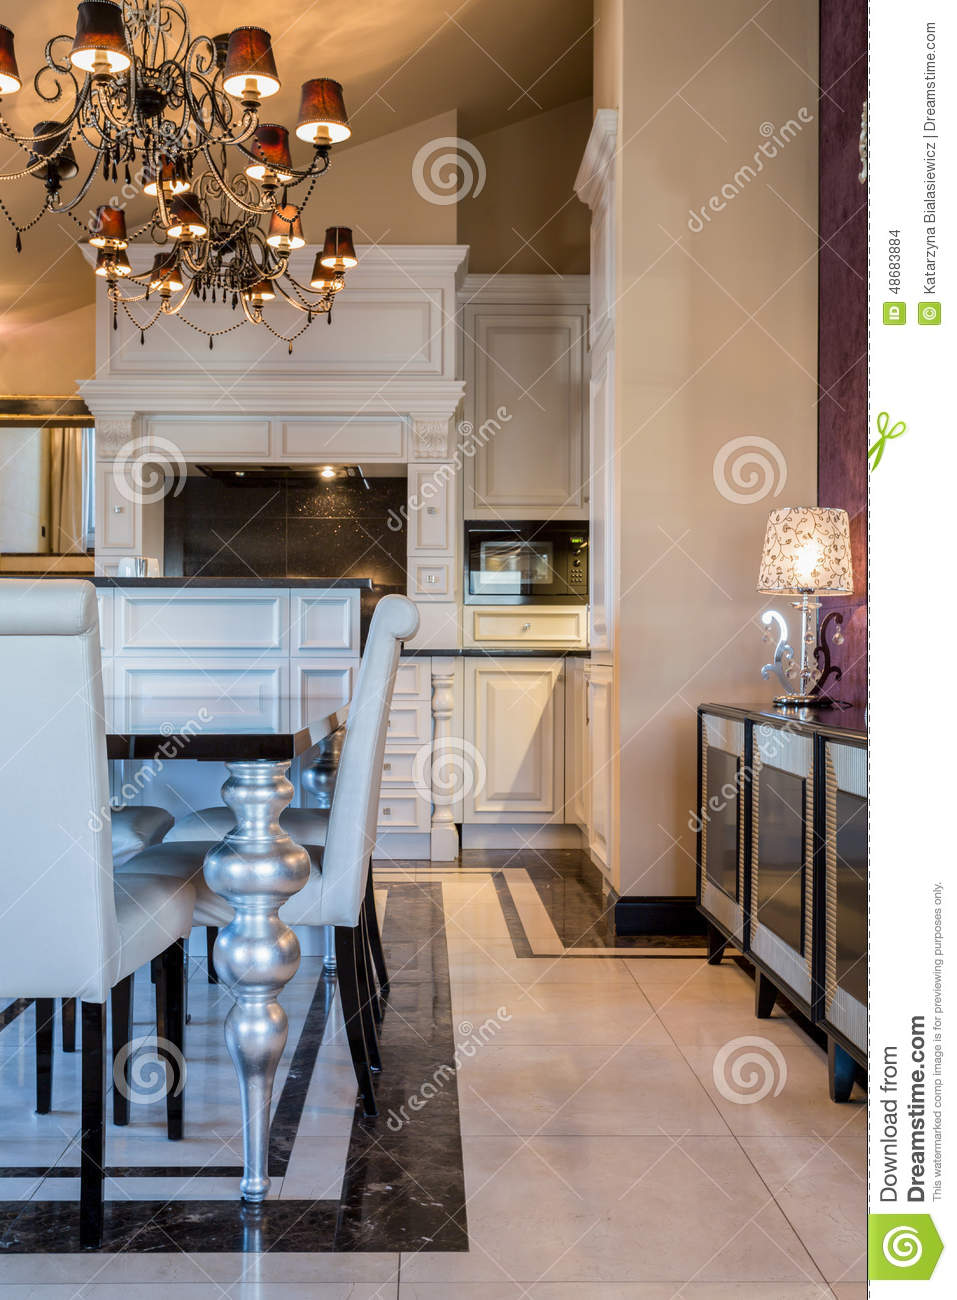 View of baroque style space stock photo image of bright royalty free stock photo dailygadgetfo Image collections